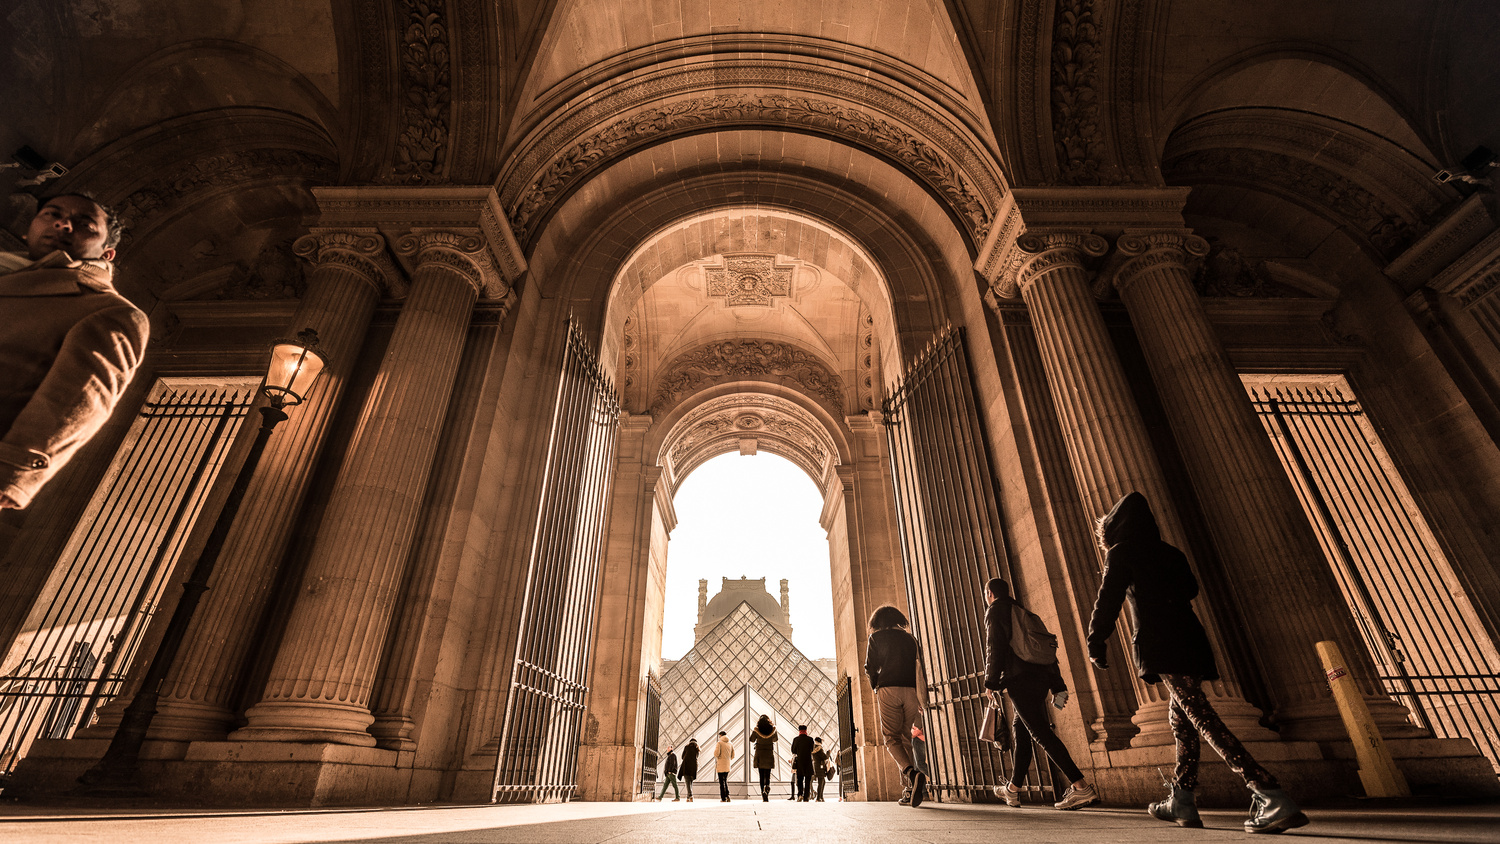 Morning Light at the Louvre by Daniel Lightfoot